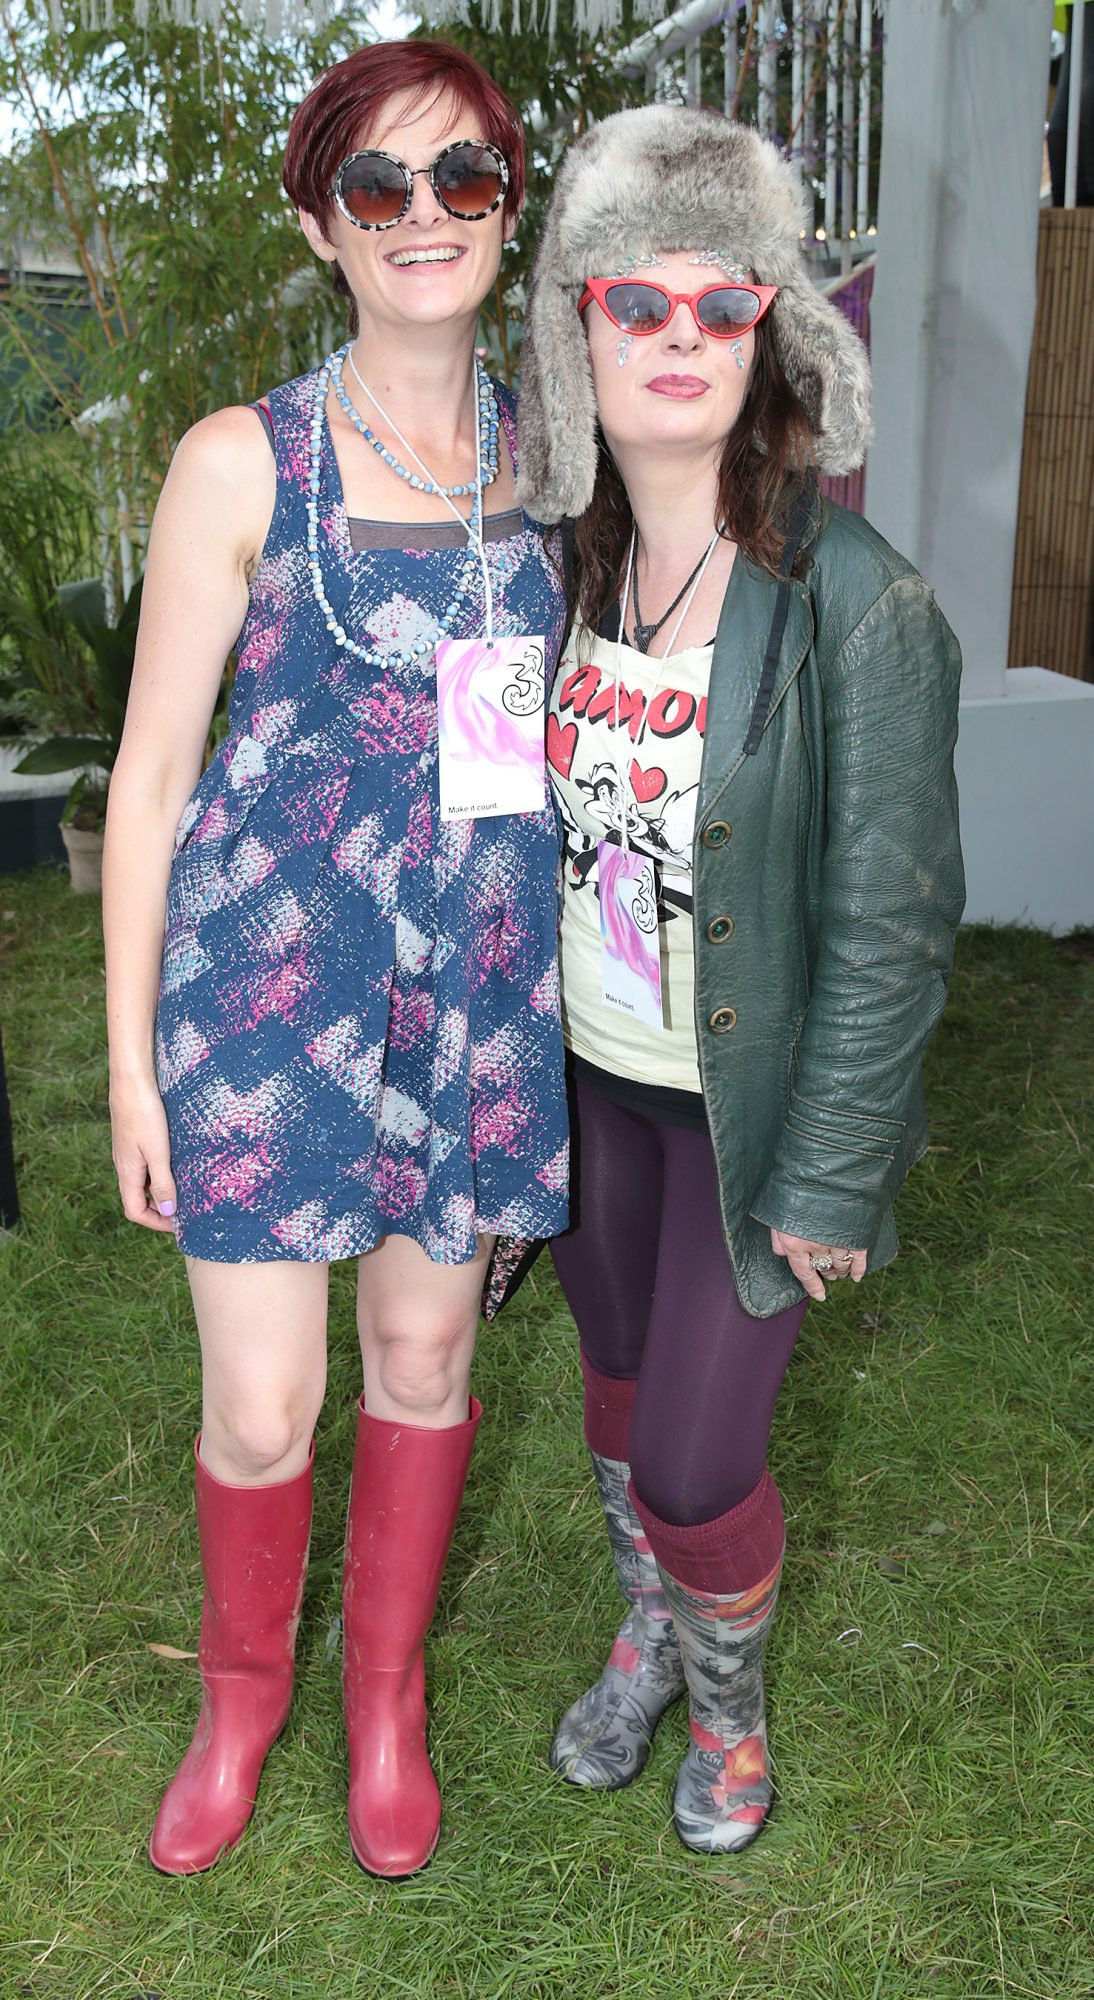 Therese Morgan and Cara Lynch at Three's Charge & Chill at Electric Picnic at Stradbally, Co. Laois. 